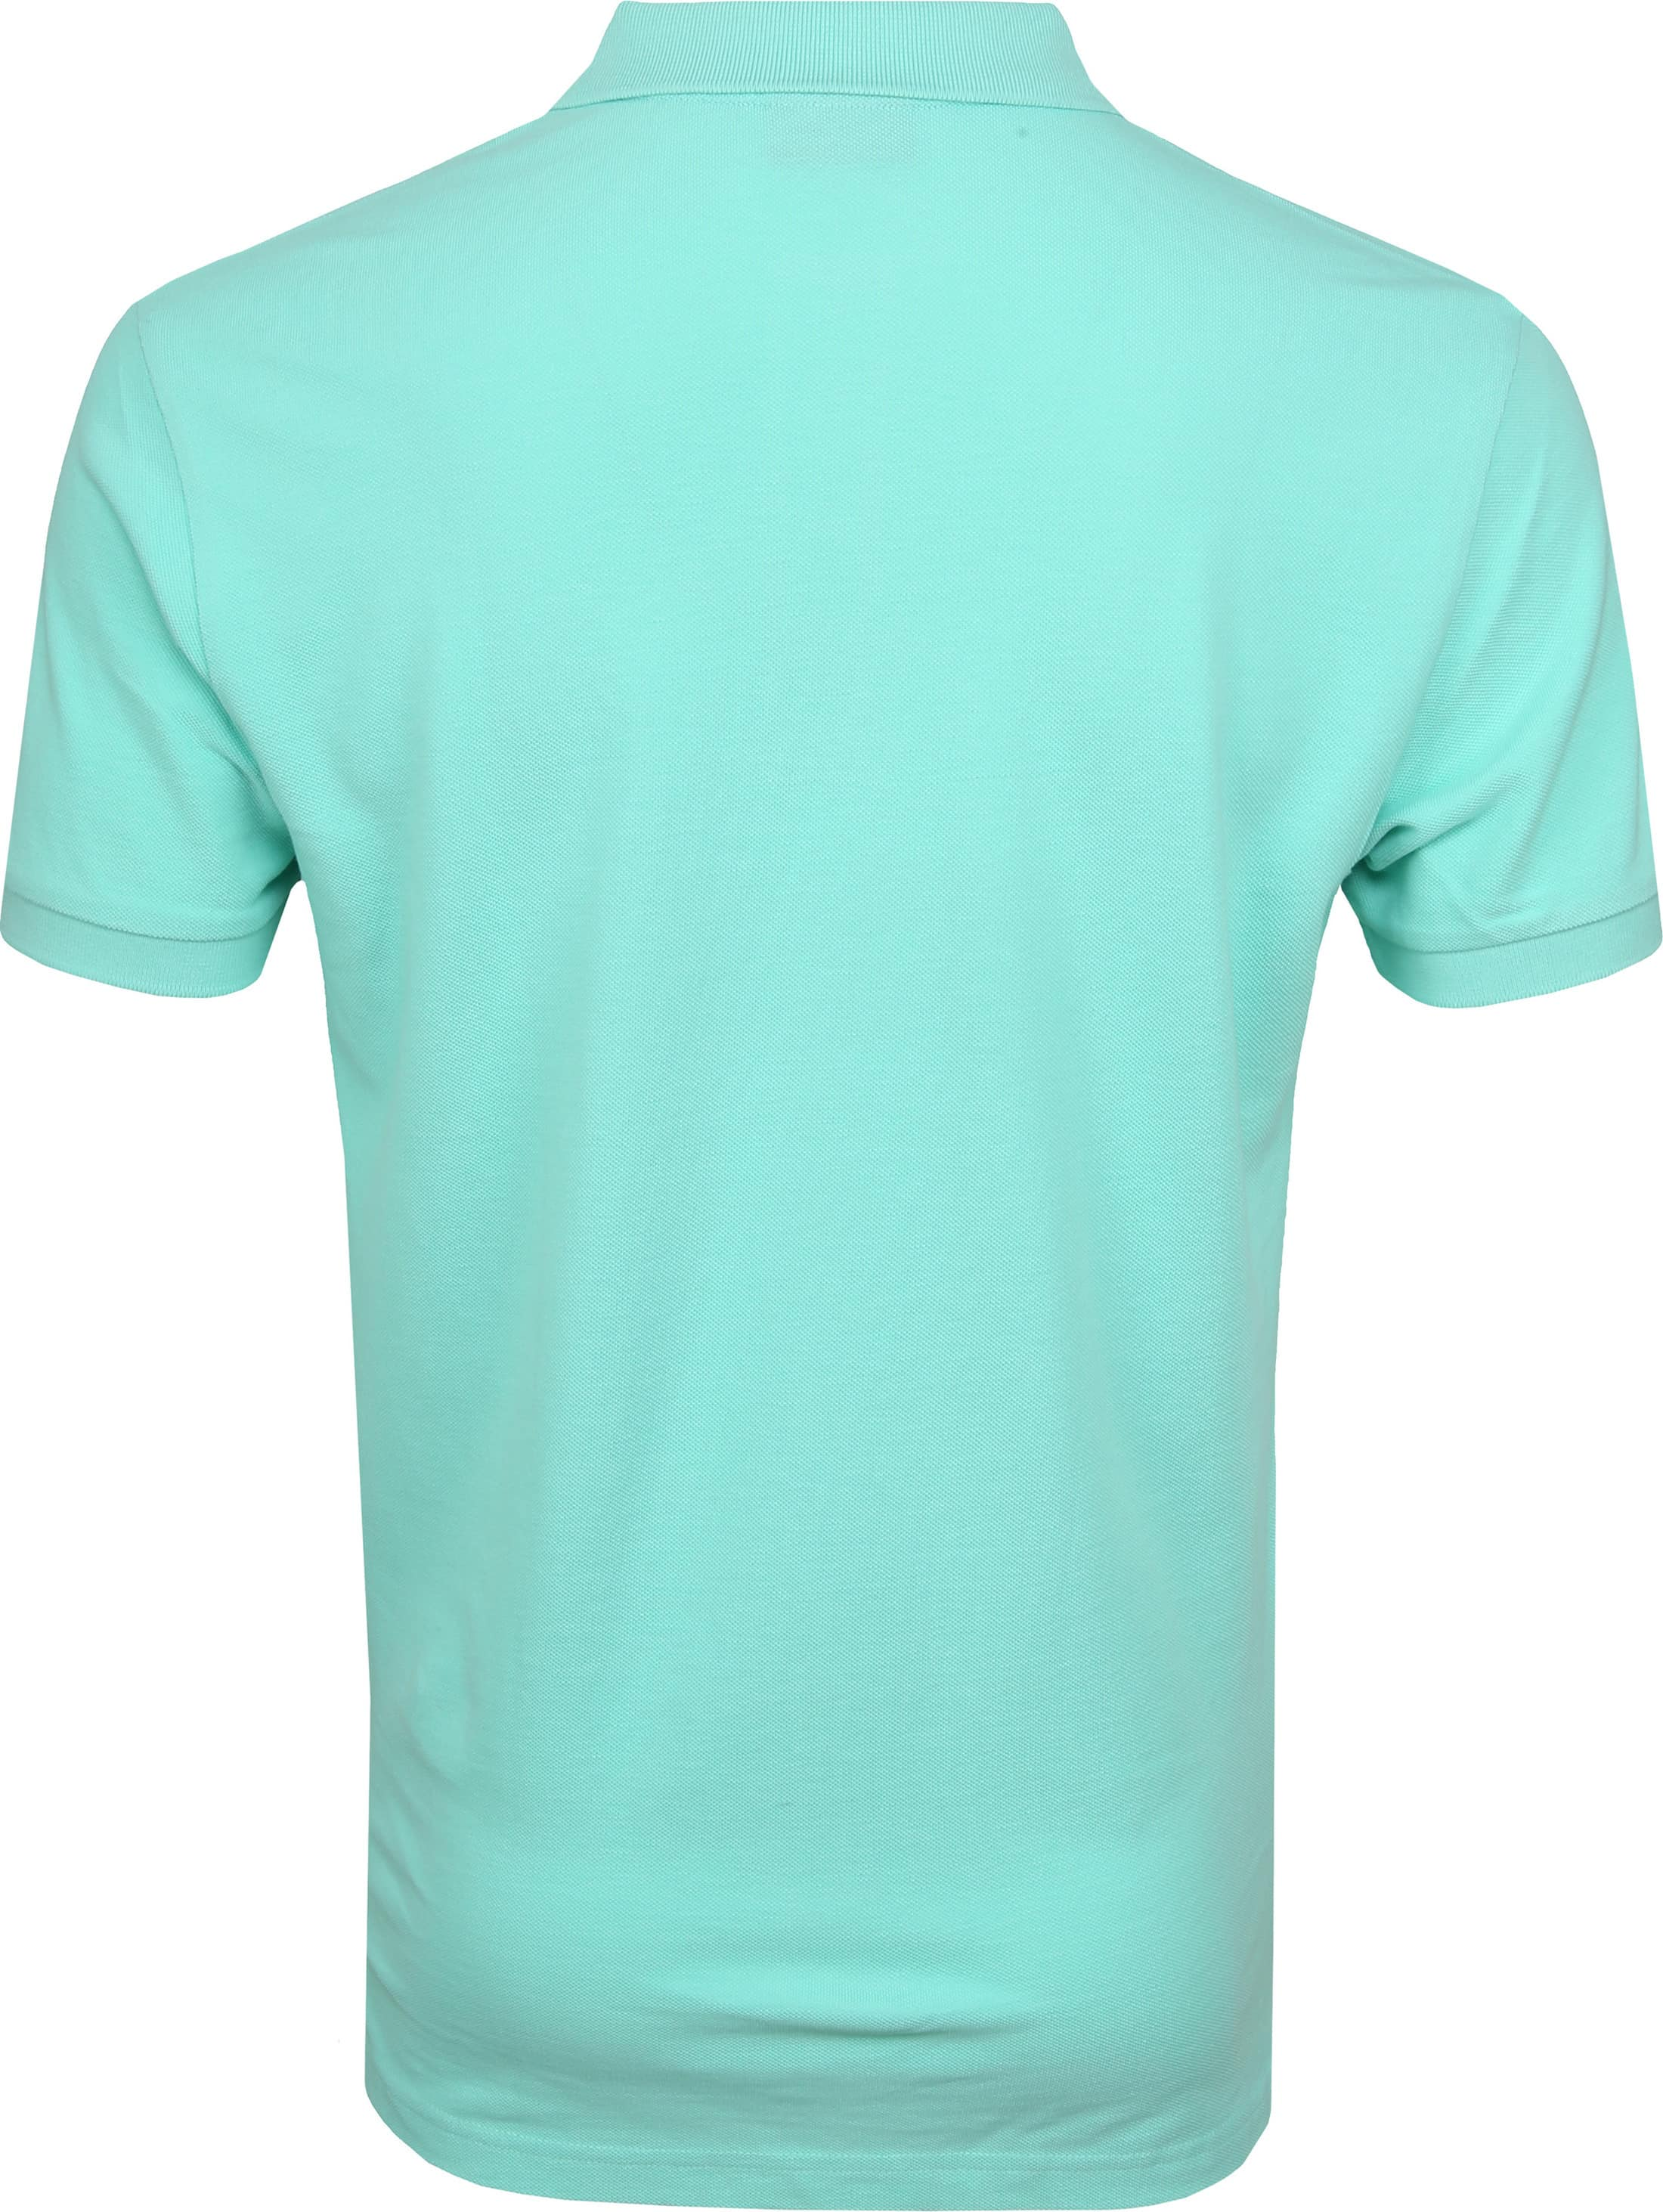 Profuomo Short Sleeve Polo Mint foto 3